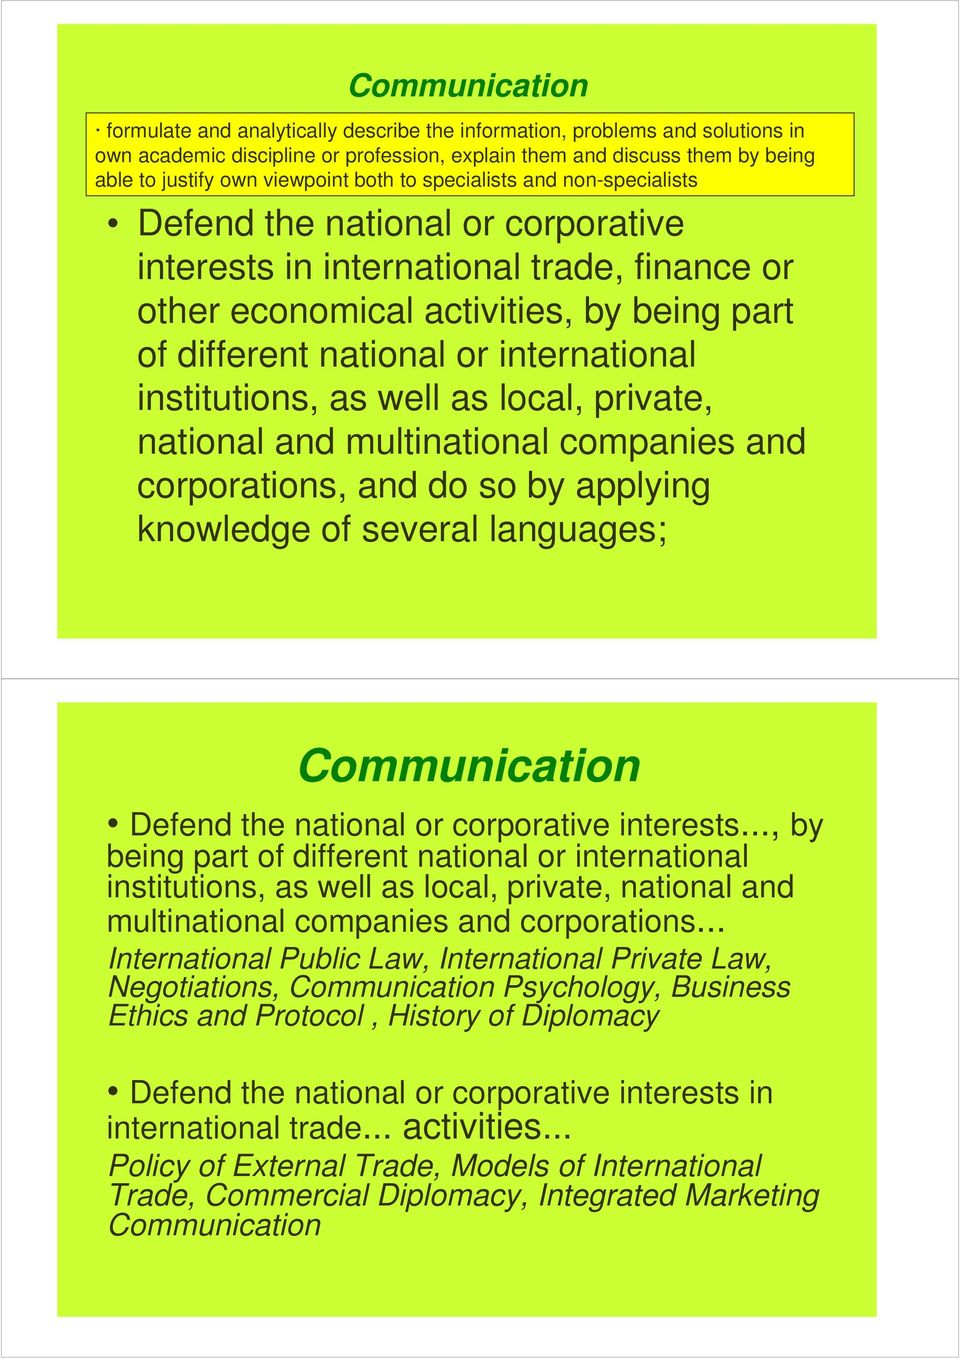 international institutions, as well as local, private, national and multinational companies and corporations, and do so by applying knowledge of several languages; Communication Defend the national